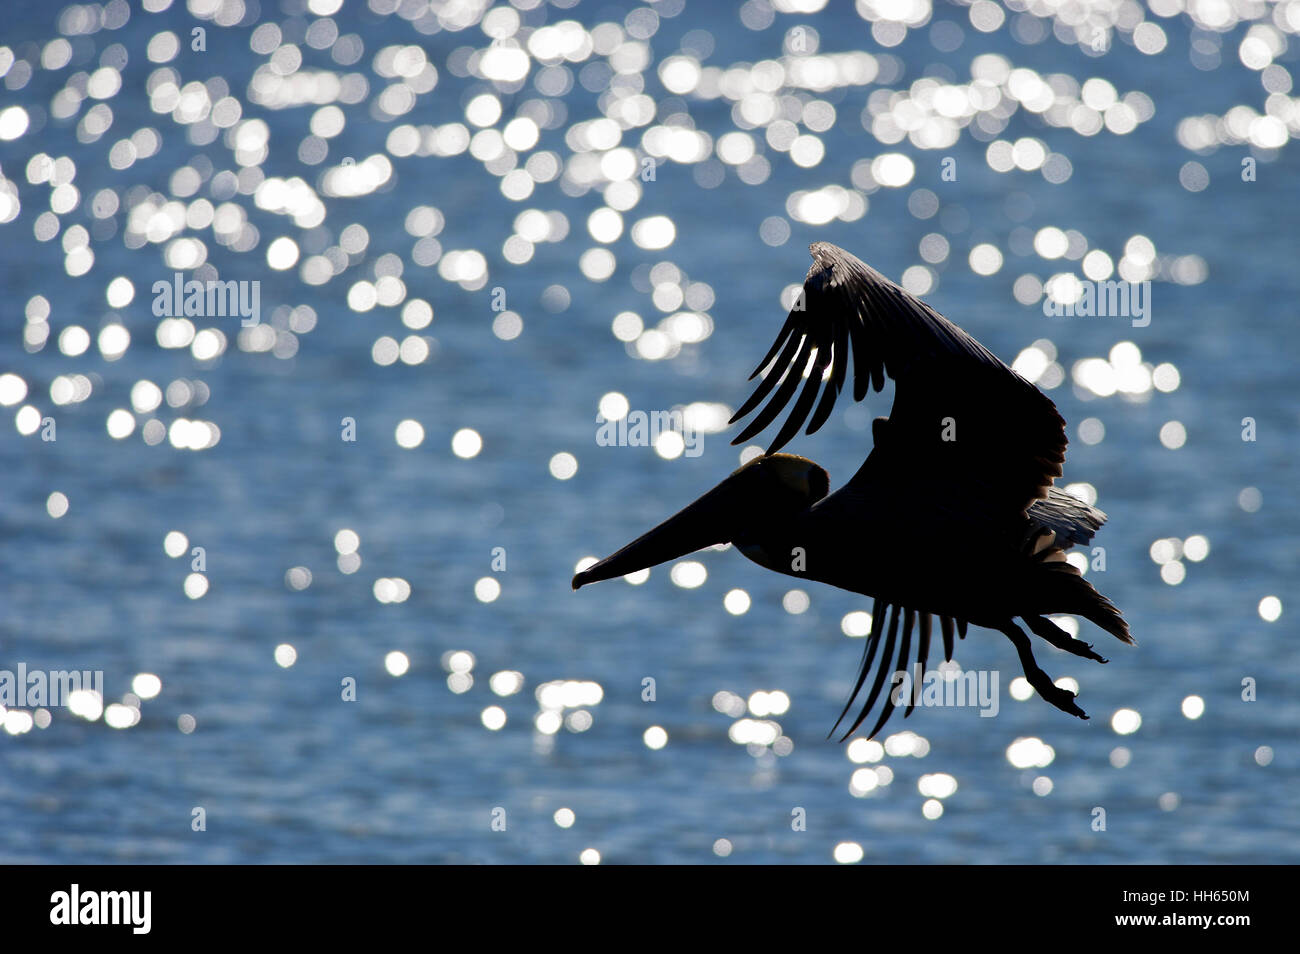 A Brown Pelican flies in front of  sparkling blue water on a bright sunny day. - Stock Image